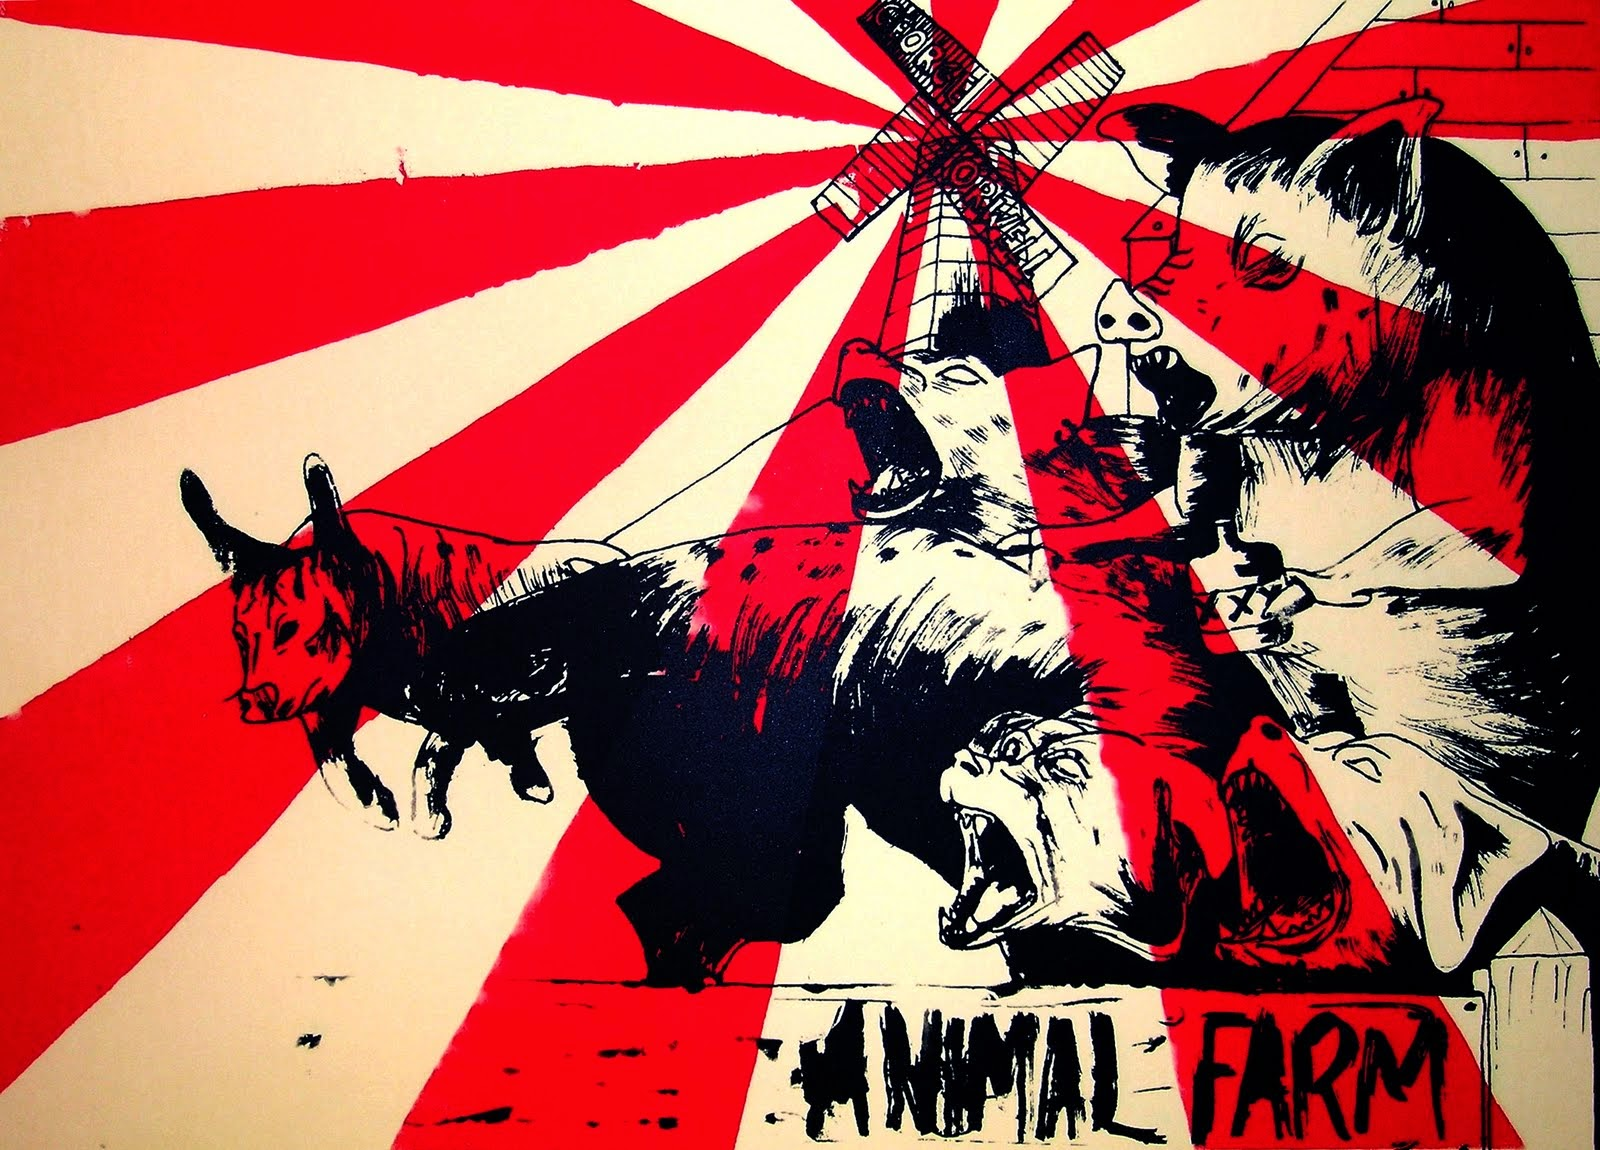 the analogy of the russian revolution portrayed in the novel animal farm Propaganda plays a really important part in the russian revolution, and as a result propaganda was also one of the main themes in animal farm in the novel, george orwell portrayed the manipulation of speech through a character named squealer, a pig who acted as a spokesperson for napoleon.